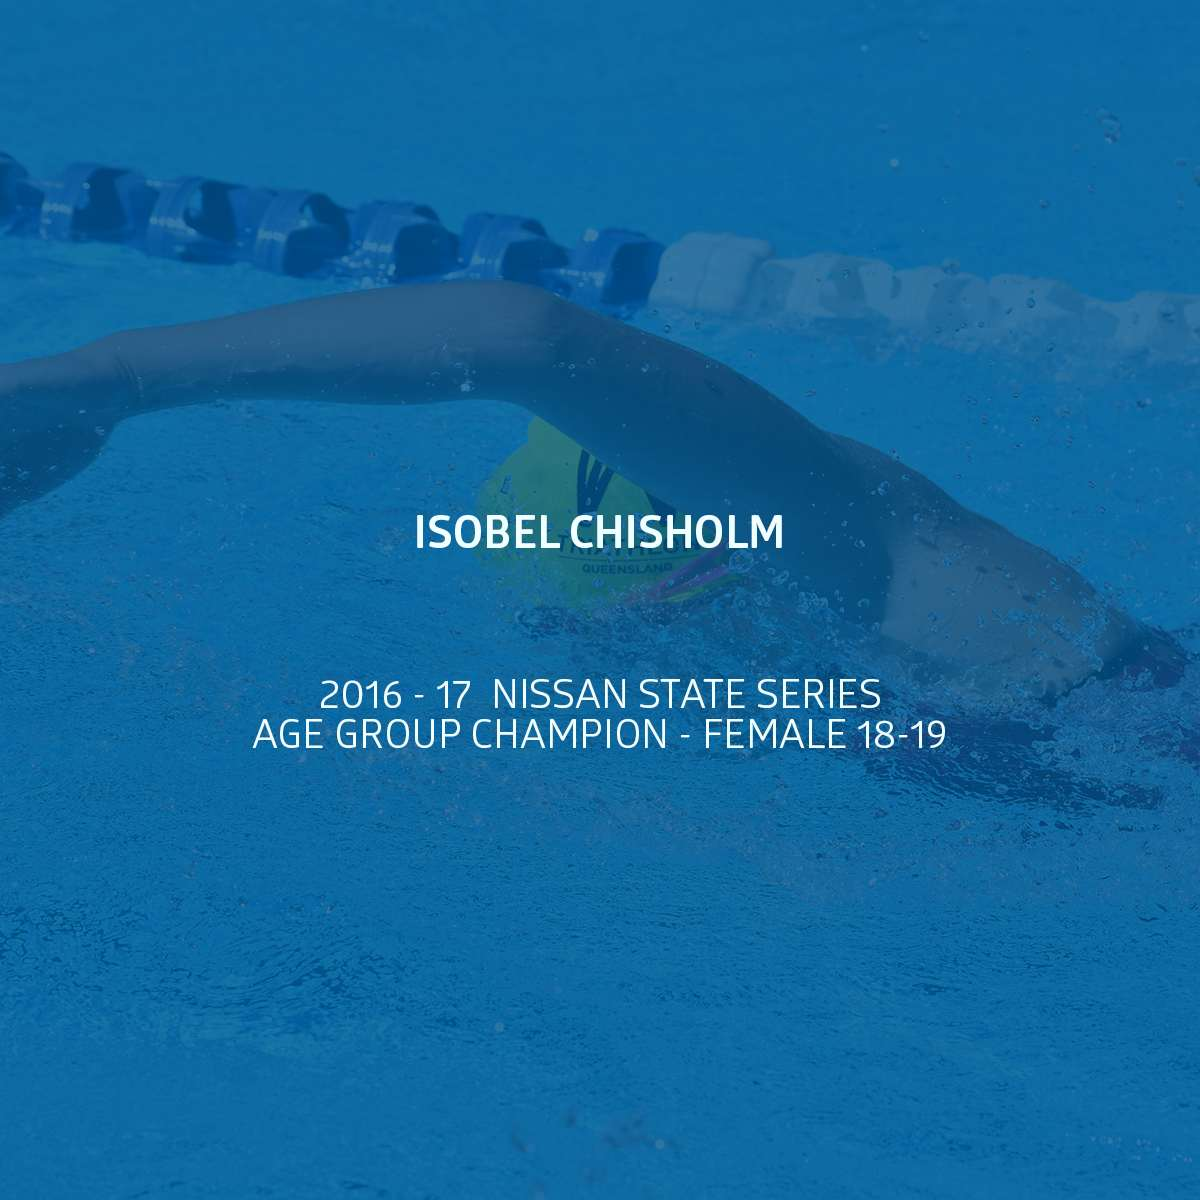 Isobel Chisholm